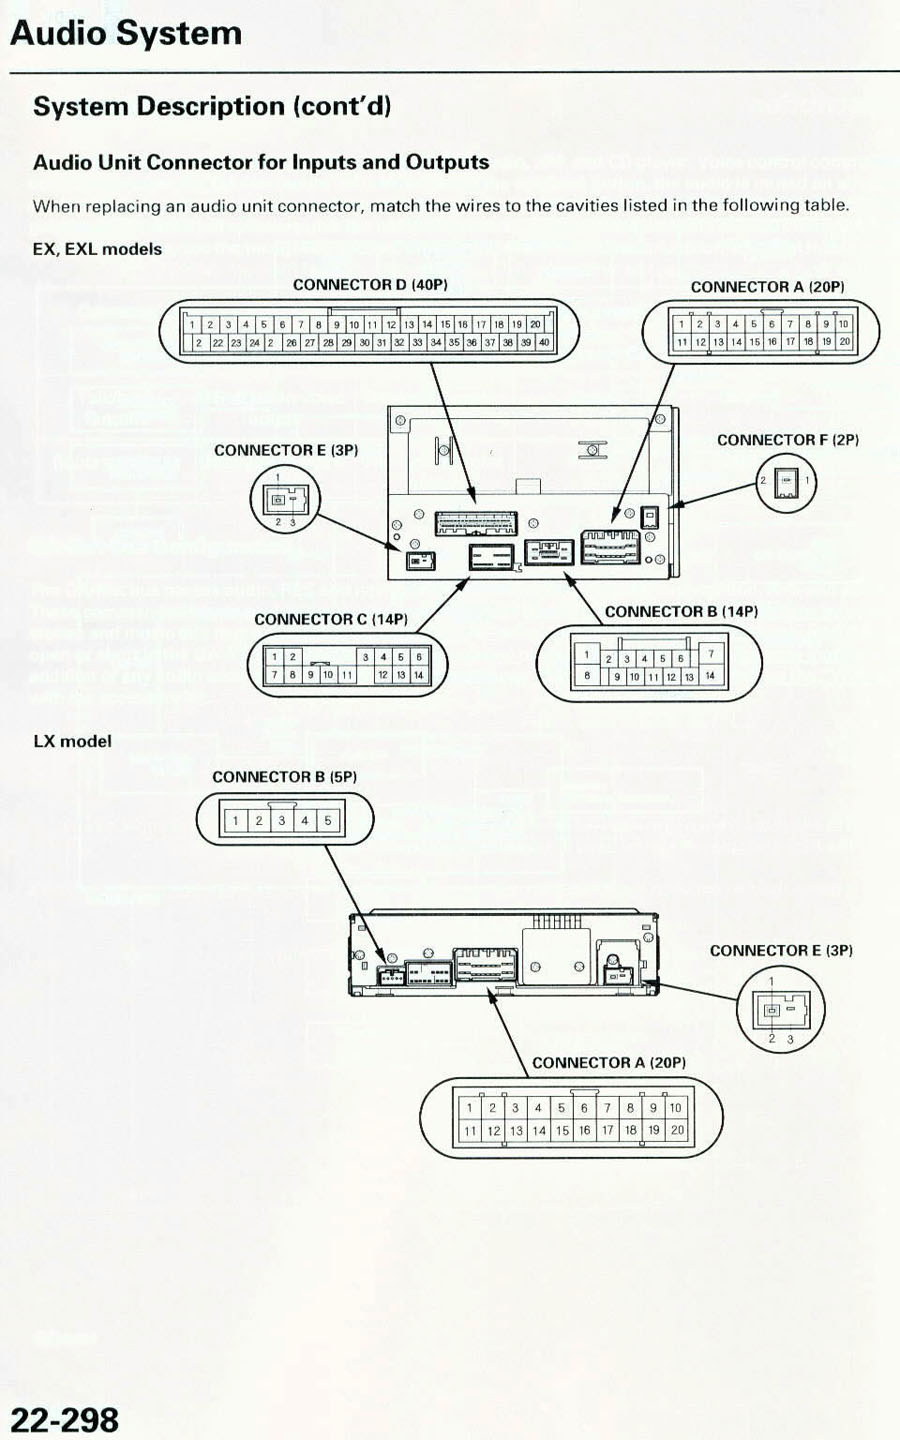 32969d1200063279 re factory subwoofer aftermarket hu audio_connector 2006 re factory subwoofer and aftermarket hu honda pilot honda 2006 honda ridgeline wiring diagram at suagrazia.org